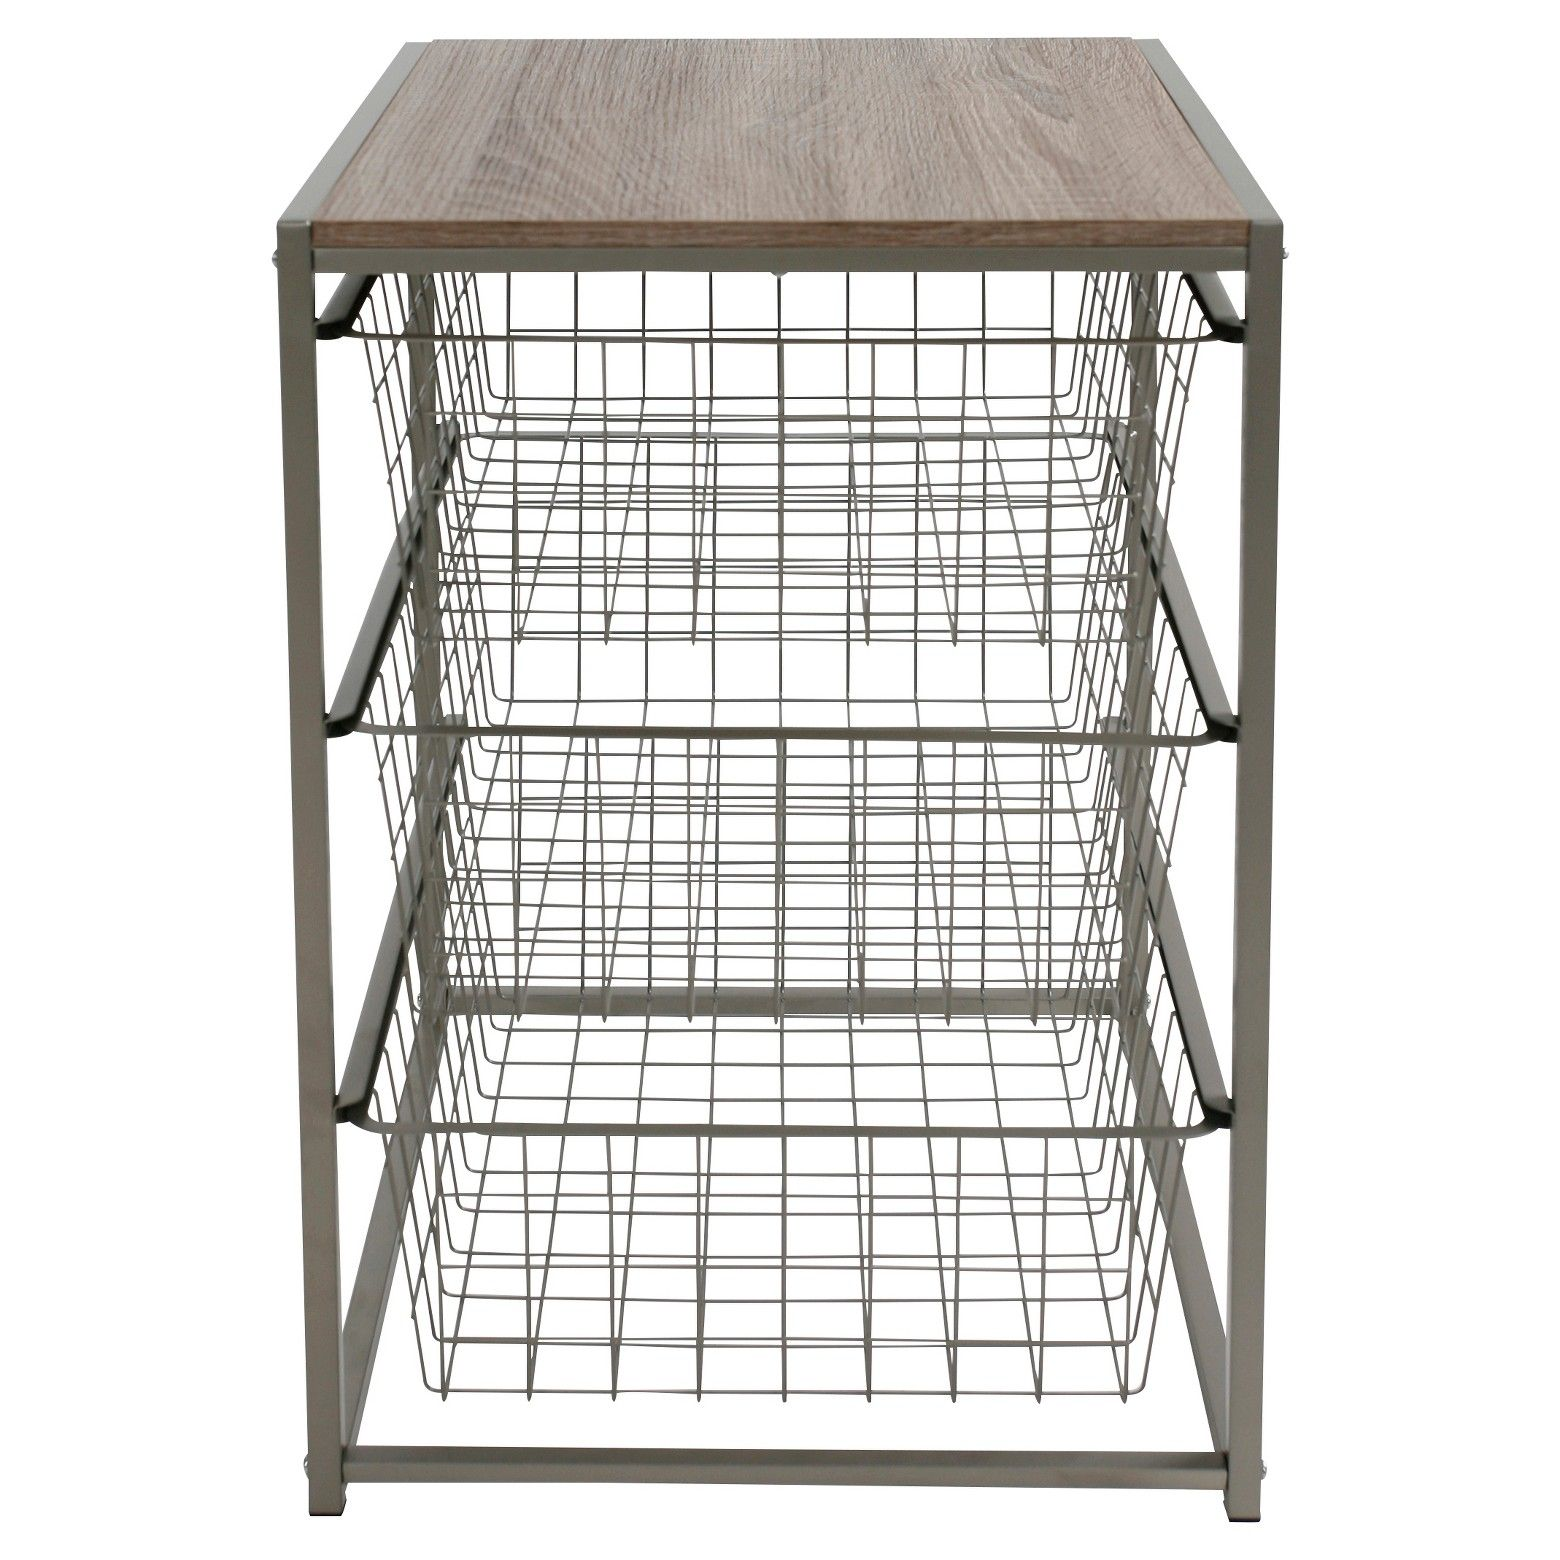 Bull Durable Steel Frame Br 3 Wire Basket Storage Drawers That Slide Out Smoothly Wood Top With A Natural Finish